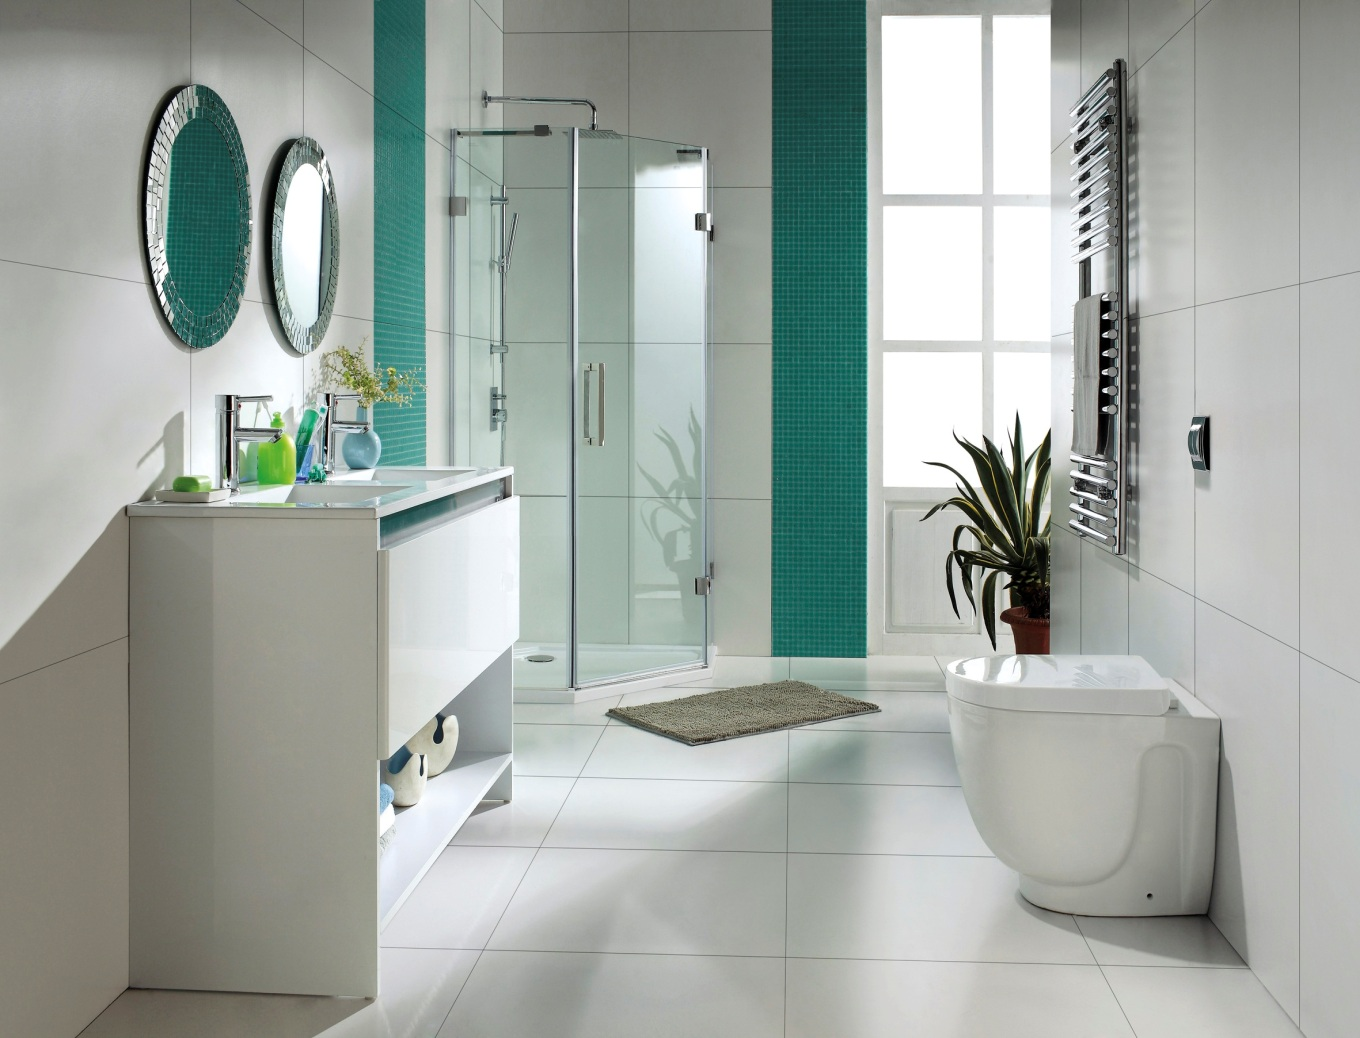 White bathroom decor ideas decor ideasdecor ideas for Bathroom decor ideas